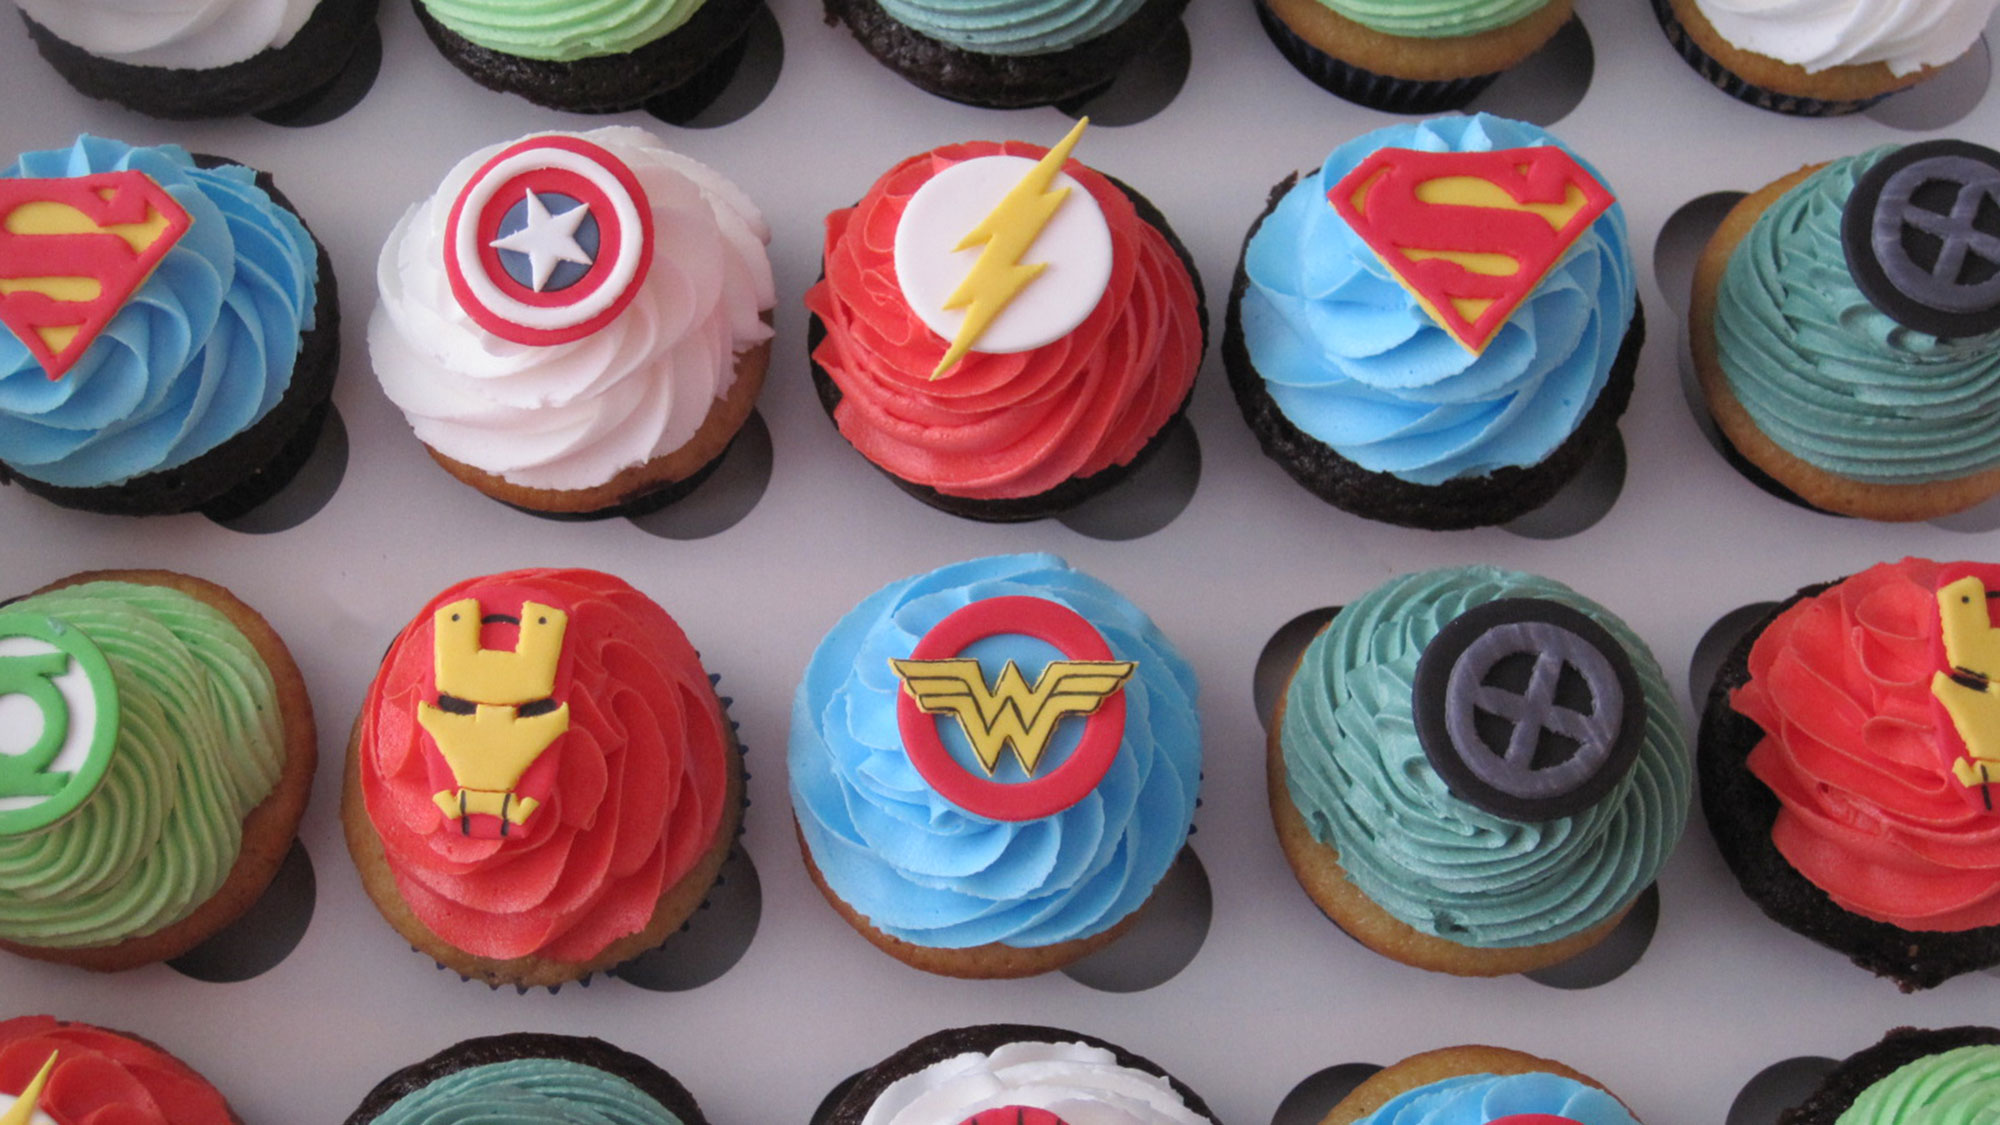 Be the next birthday hero with delicious custom cupcakes!